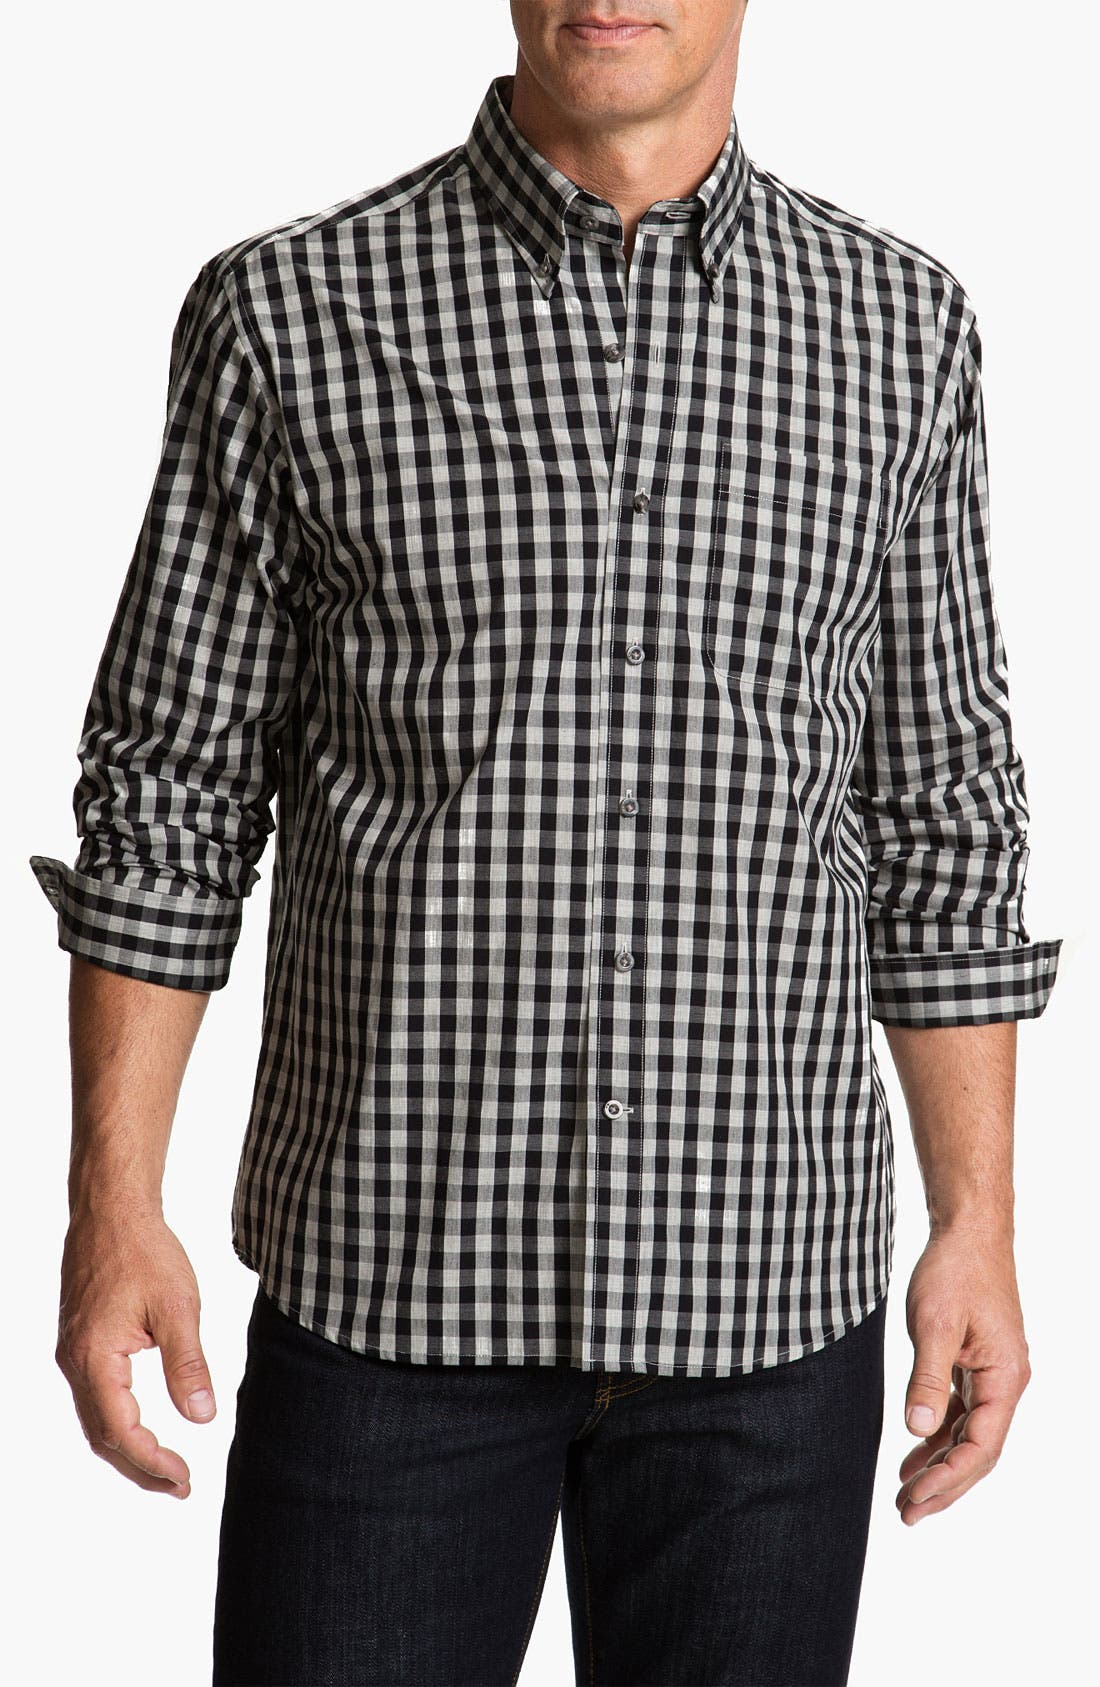 Main Image - Cutter & Buck 'Tusk' Check Sport Shirt (Big & Tall)